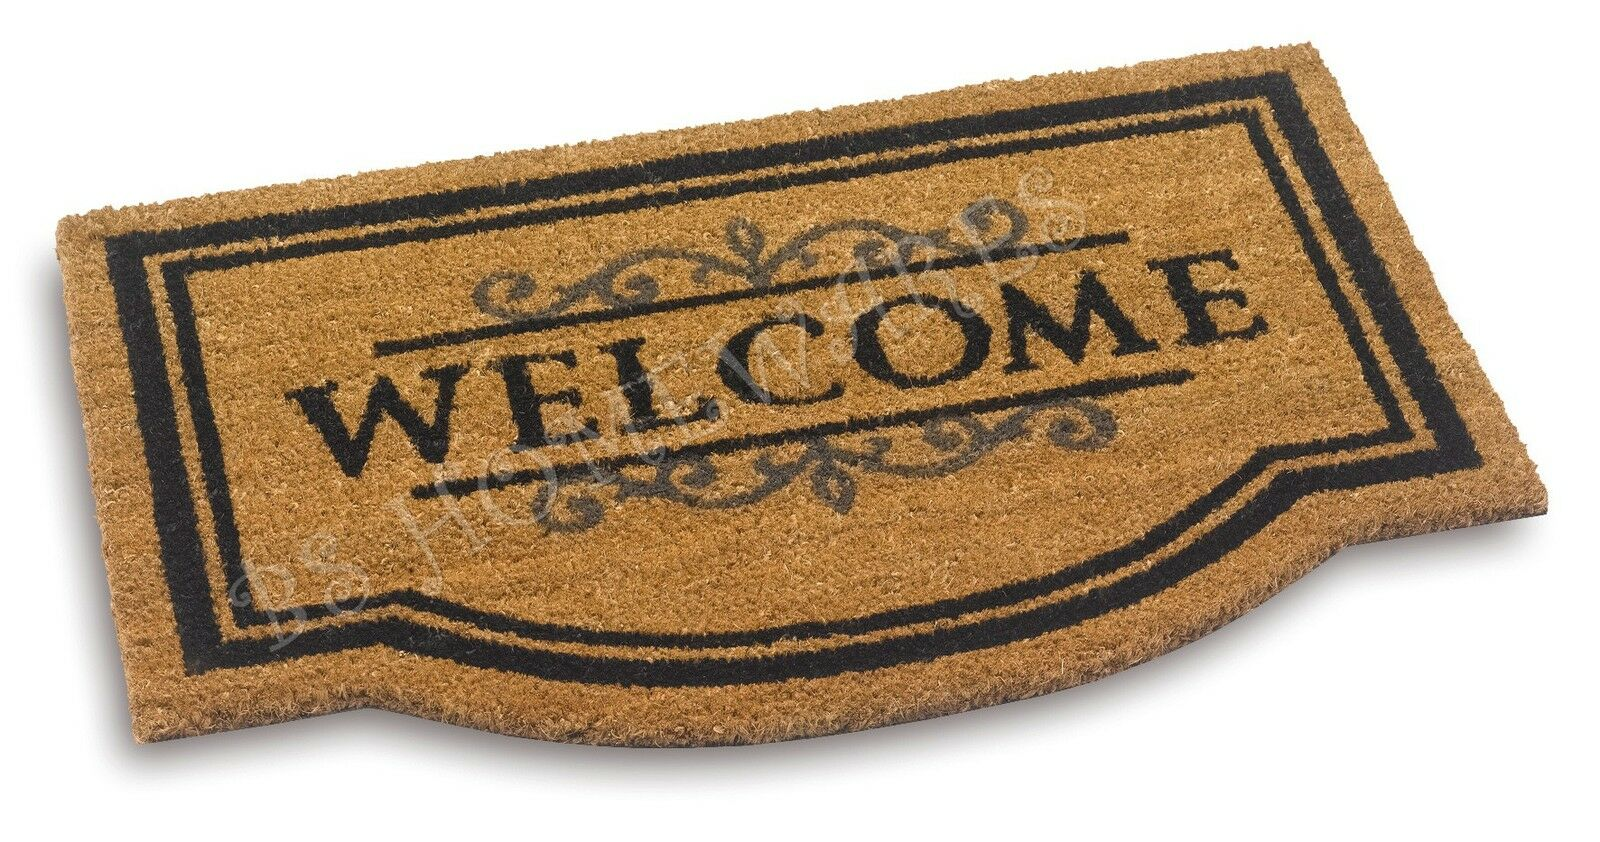 Large Door Mats Outdoor Large Door Mat Welcome Coir Floor Entrance Indoor Outdoor